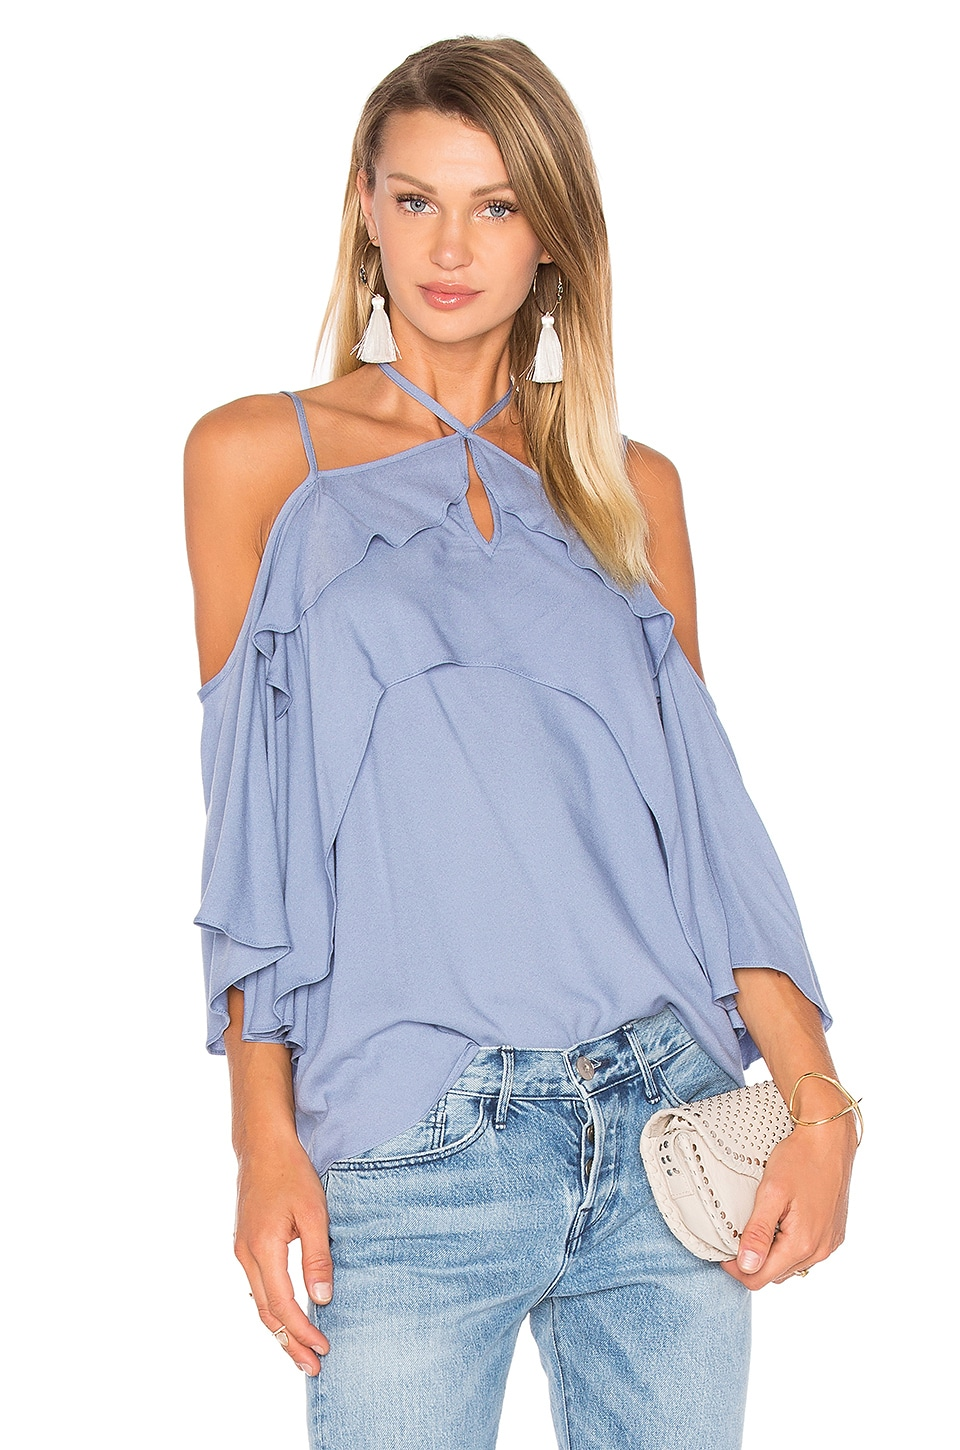 Ella Moss Stella Cold Shoulder Top in Periwinkle